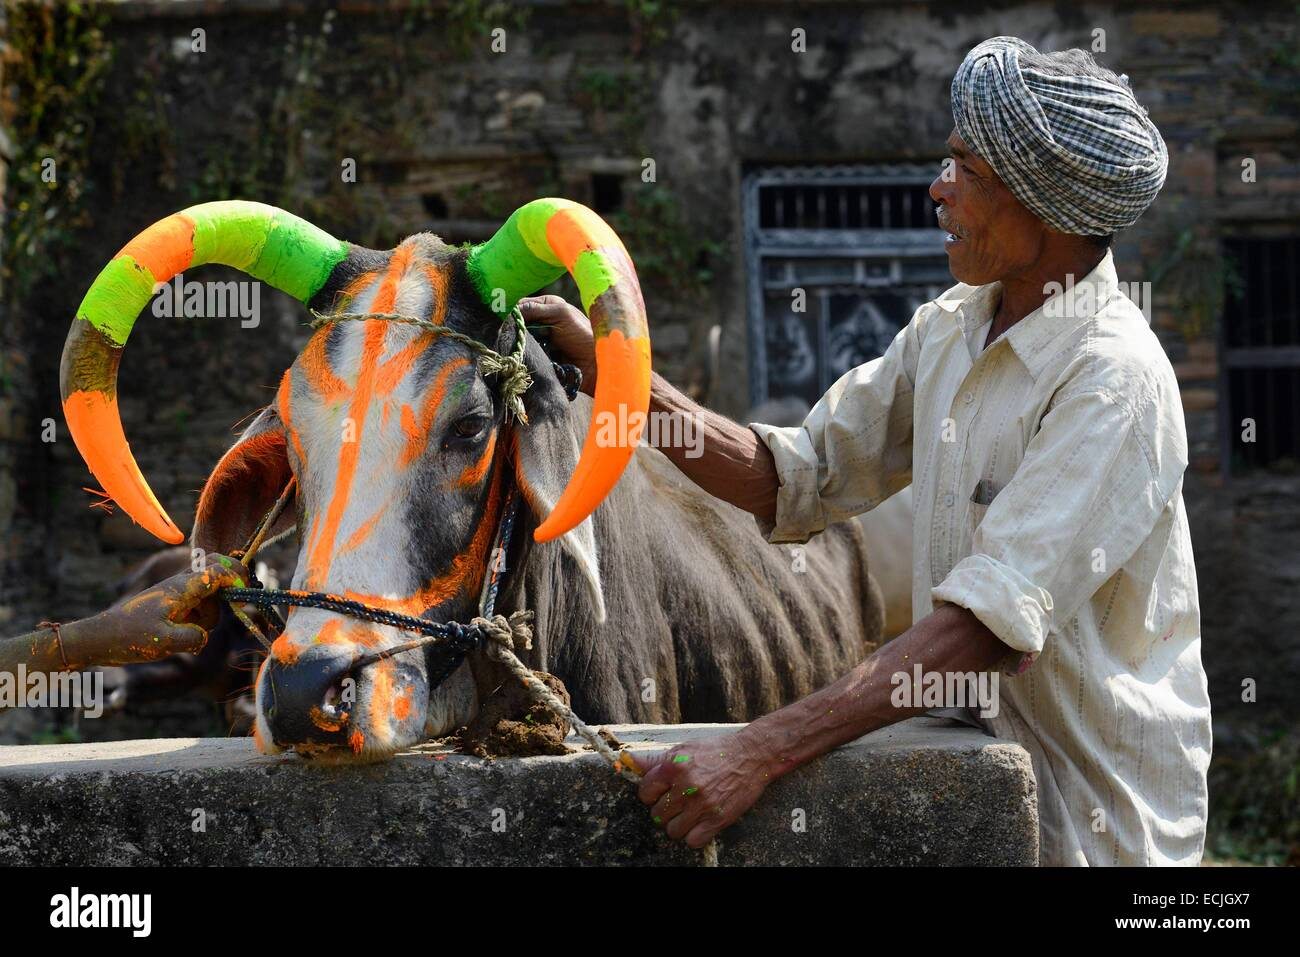 India, Rajasthan, Udaipur region, Diwali festival, Farmers painting the horns of a holy cow The fourth day of Diwali - Stock Image